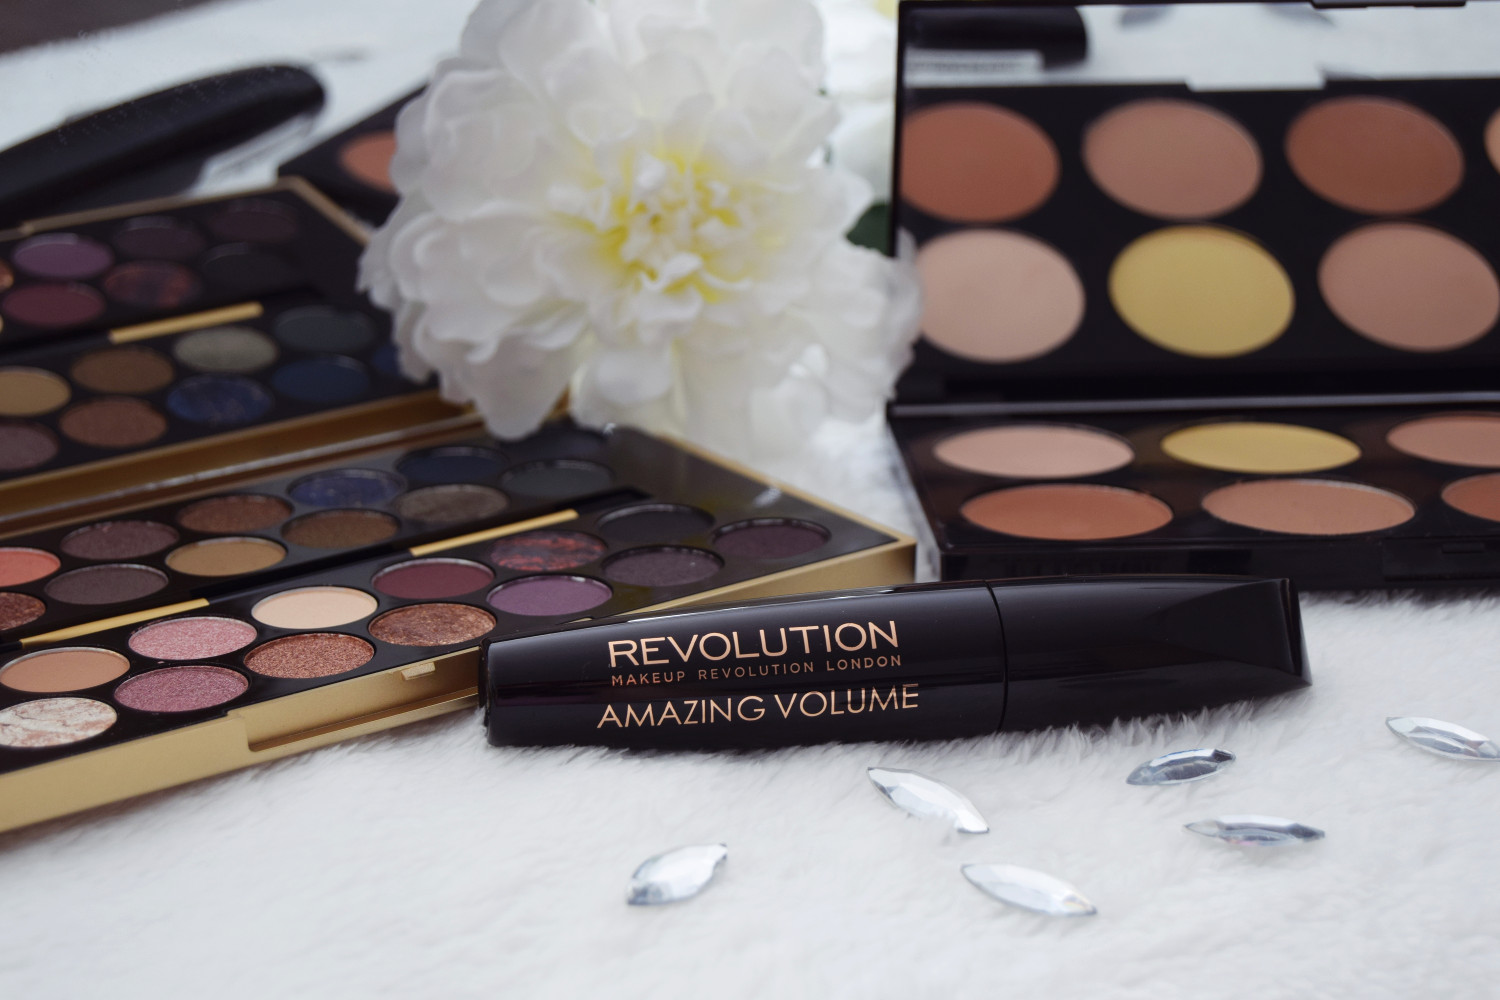 Makeup_Revolution_London_haul_review_Zalabell_1